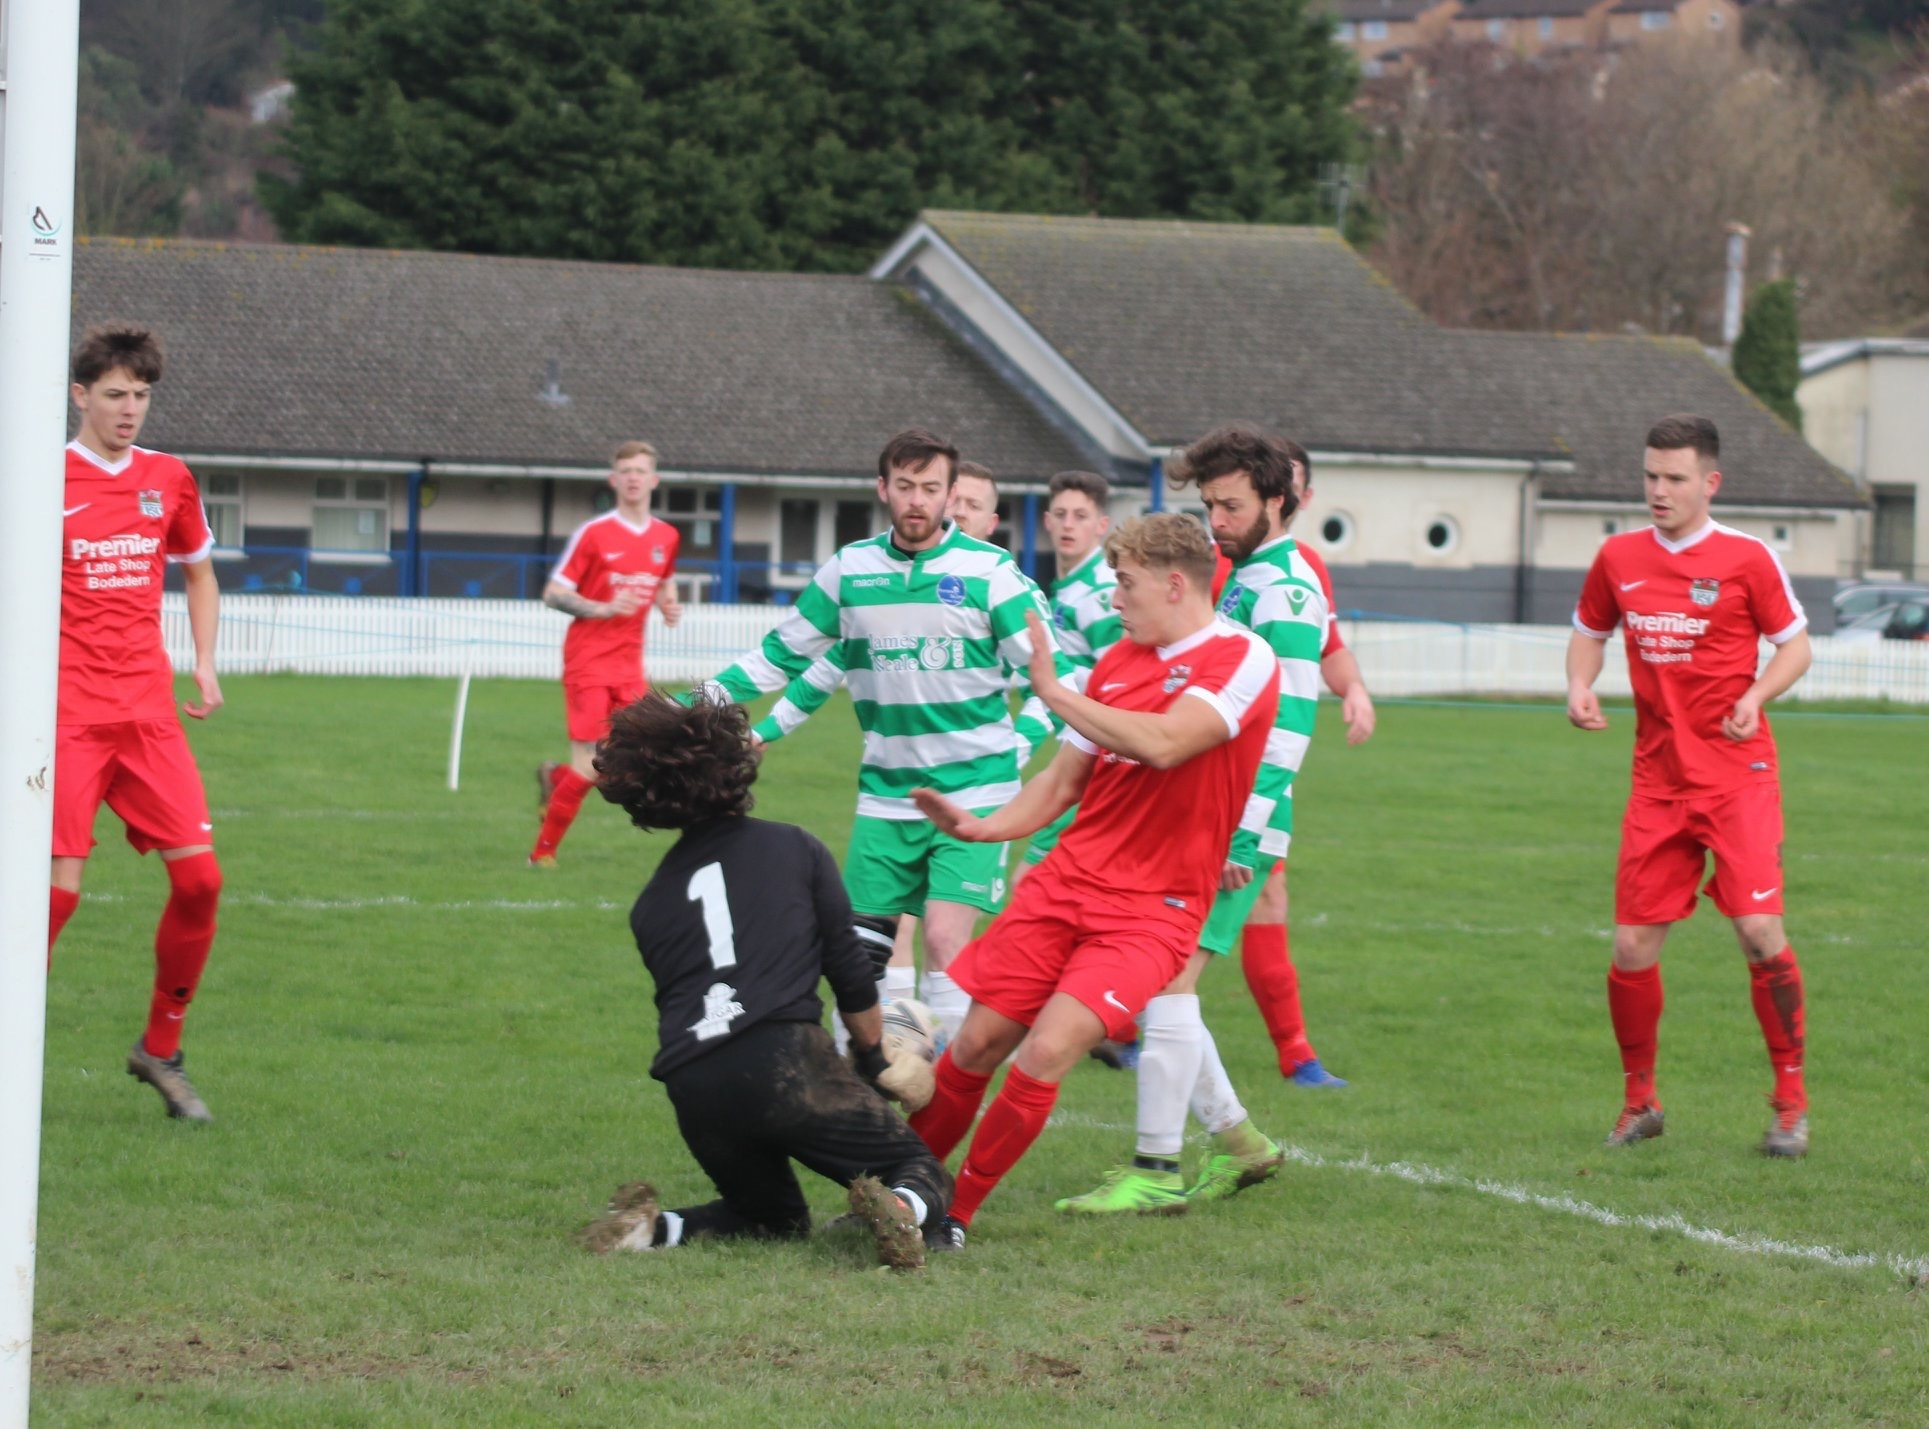 Glan Conwy picked up a vital win at Pwllheli